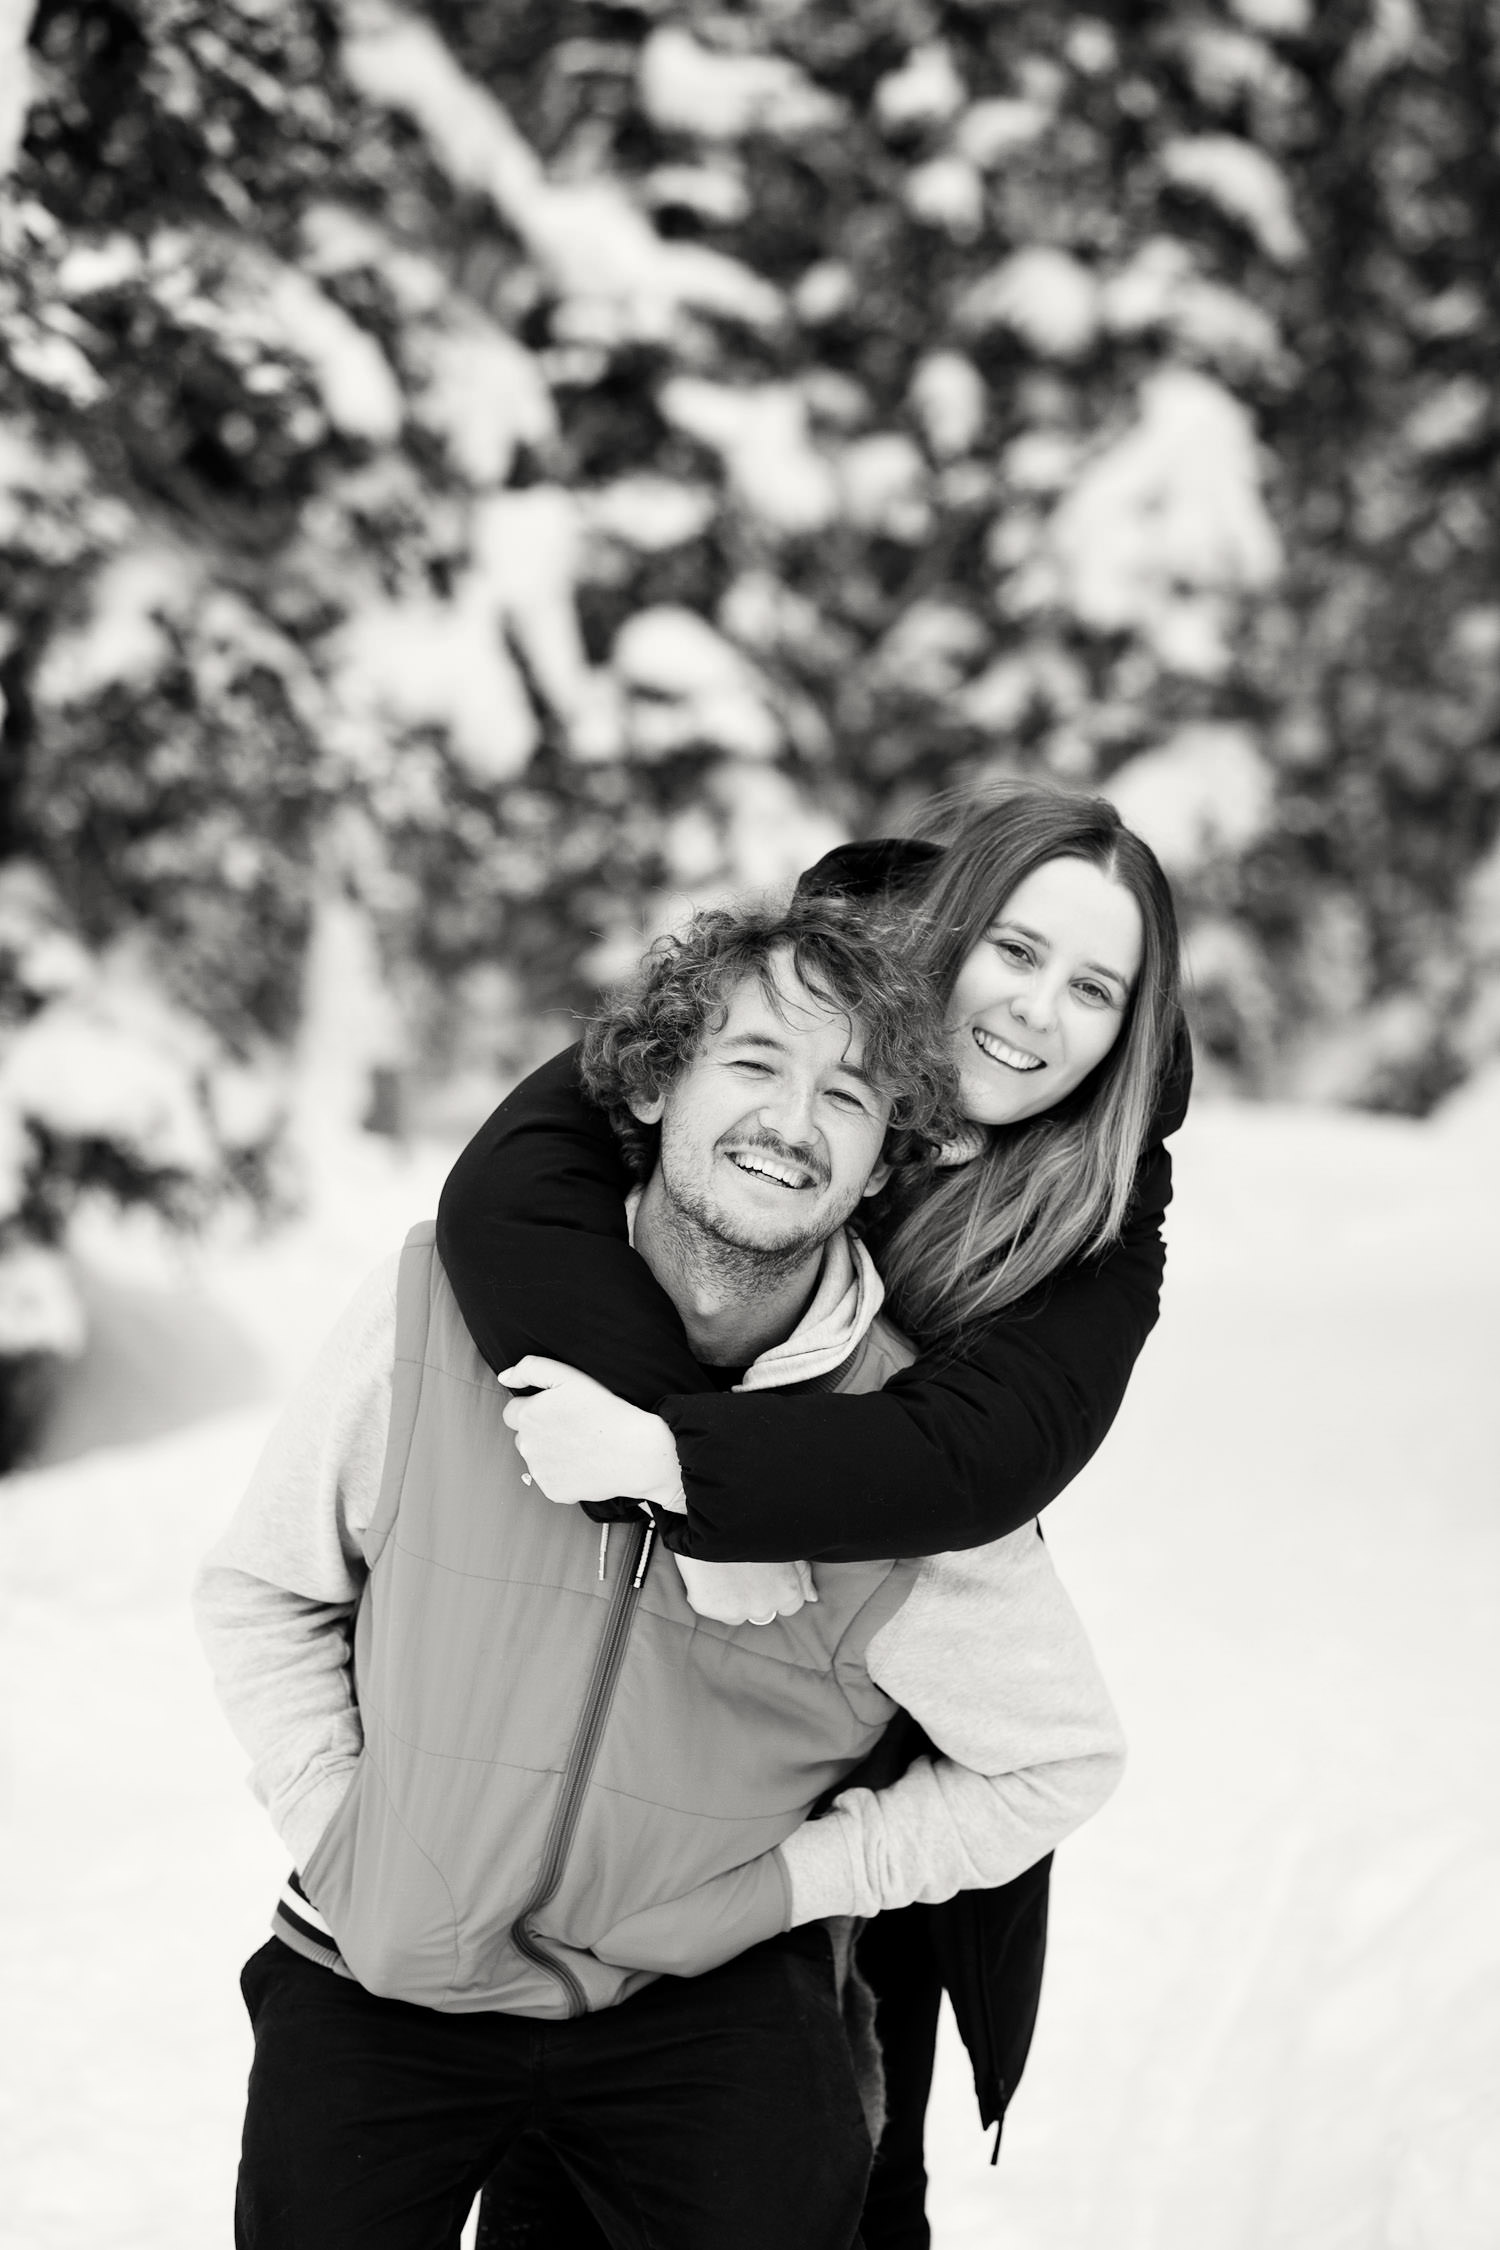 happy couple during engagement session at Lake Louise captured by Tara Whittaker Photography